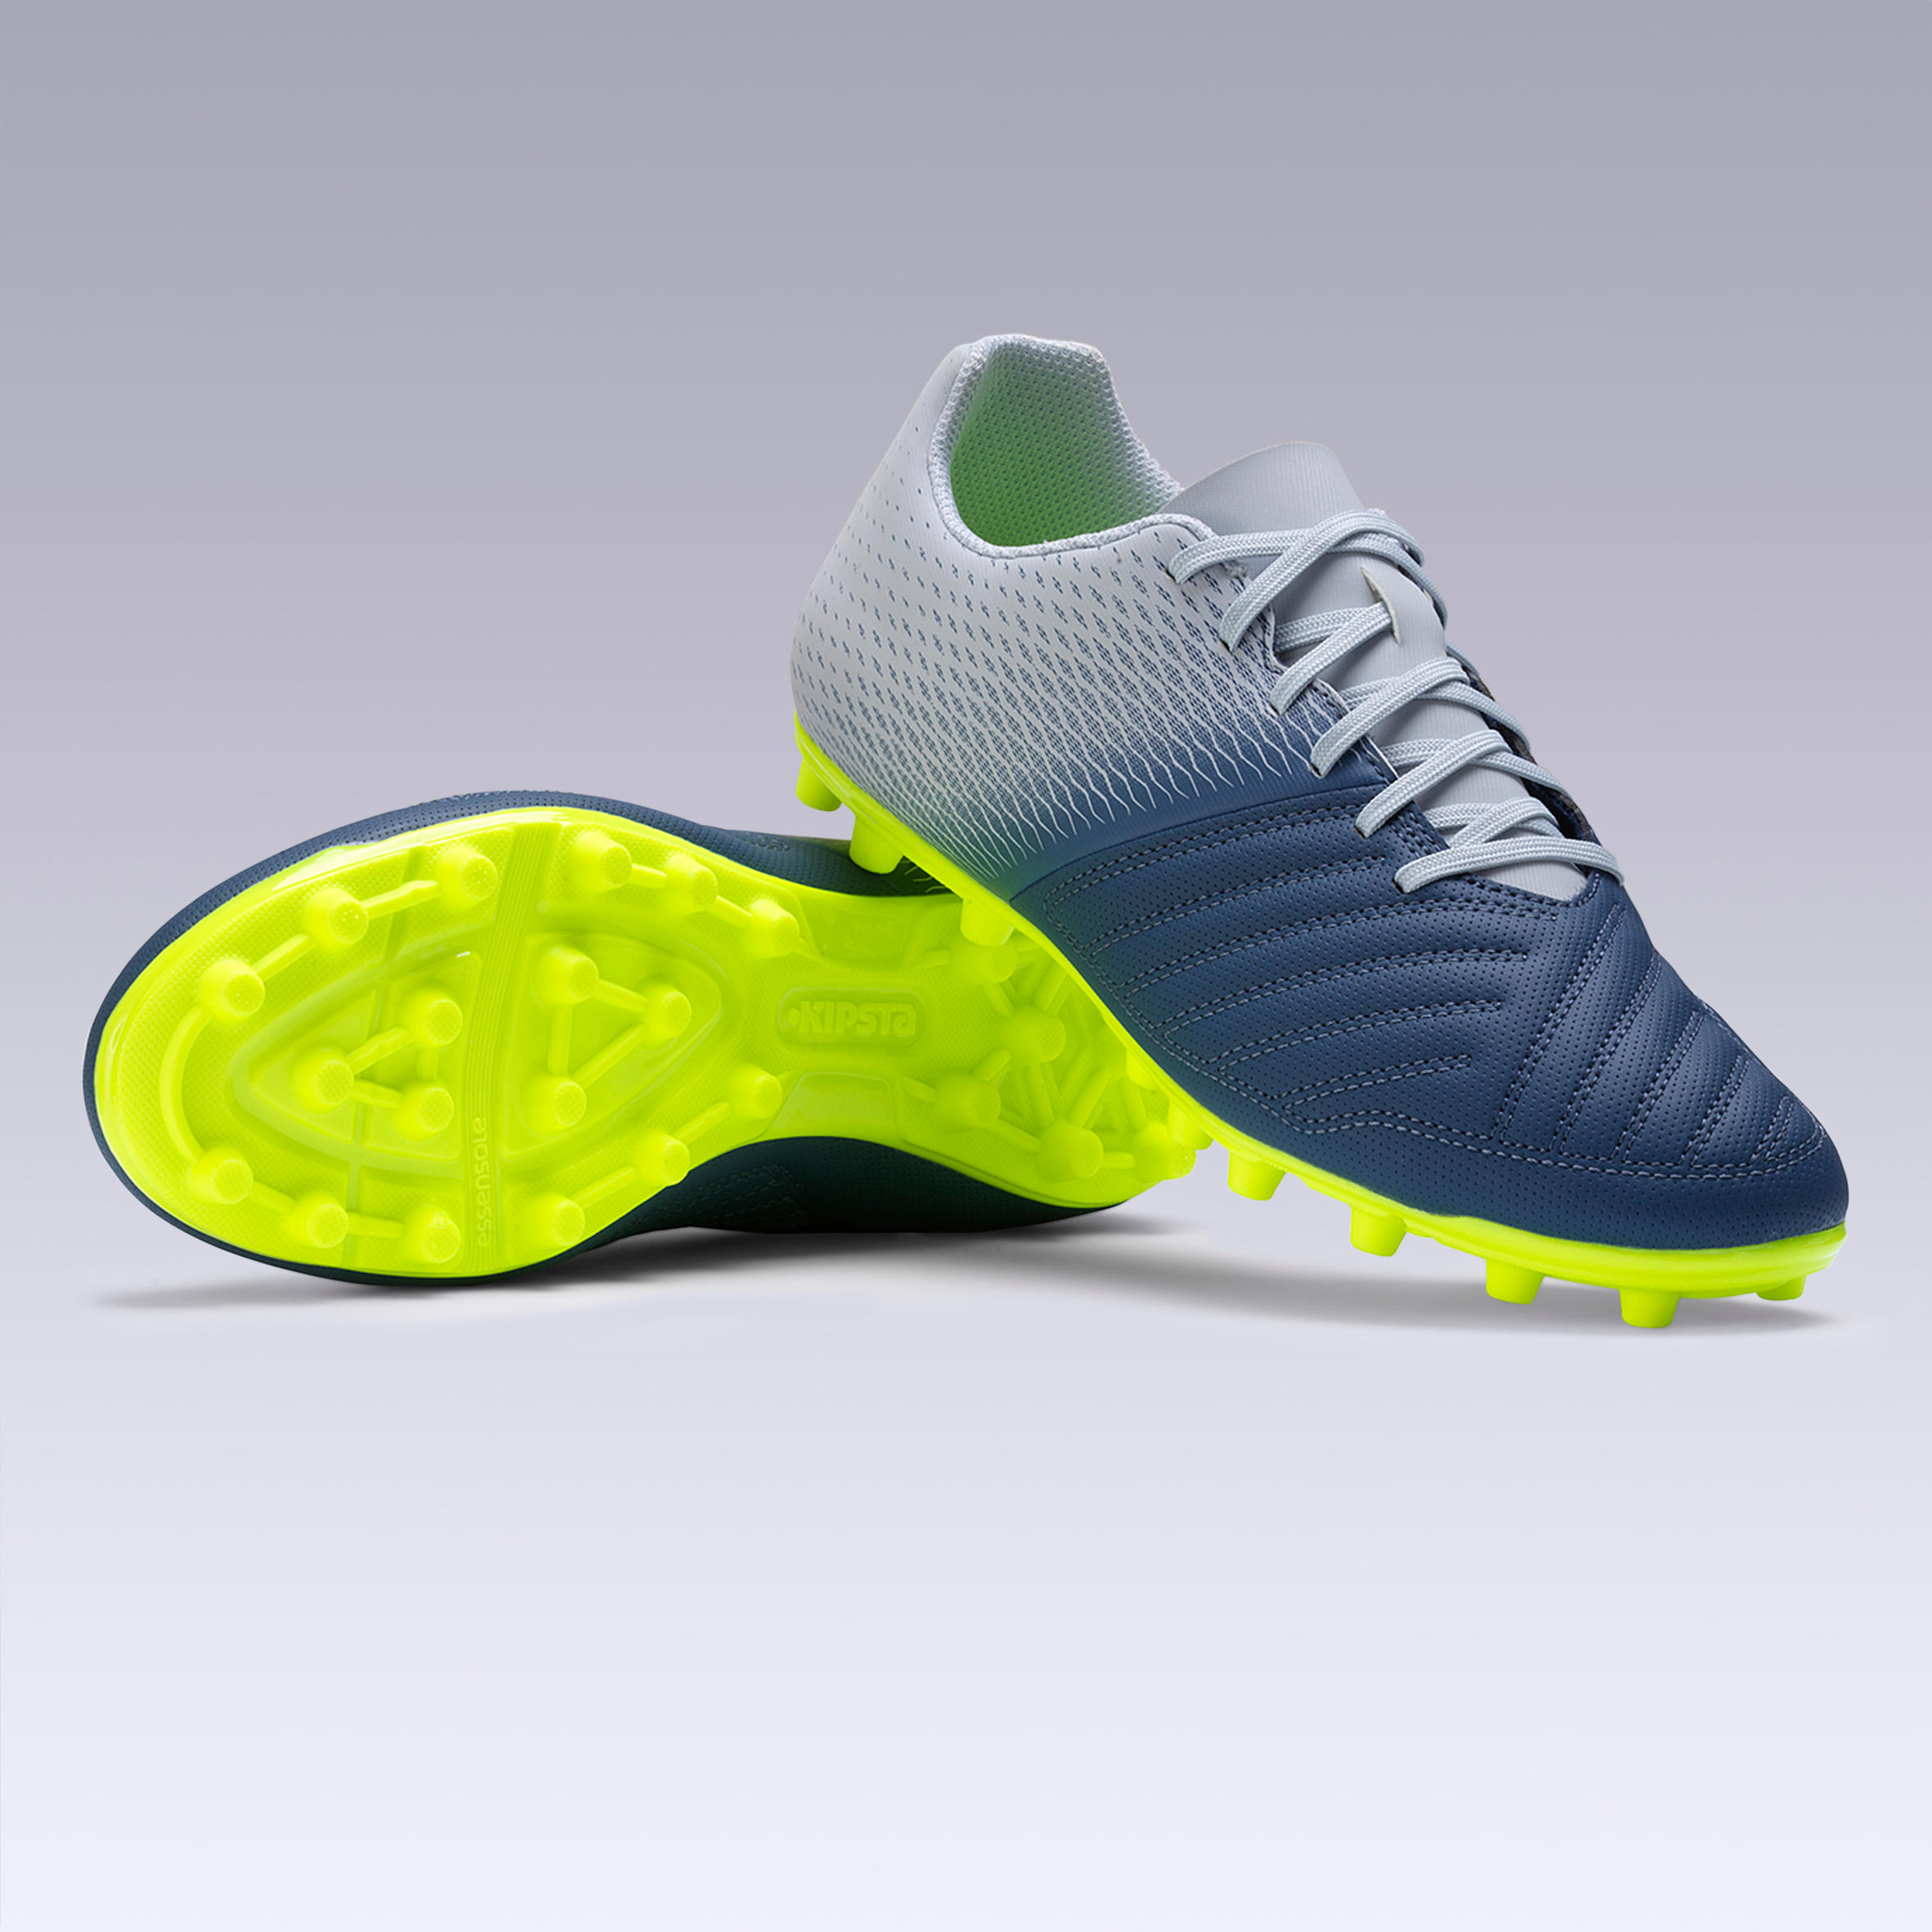 Buy Football shoes for men - Agility